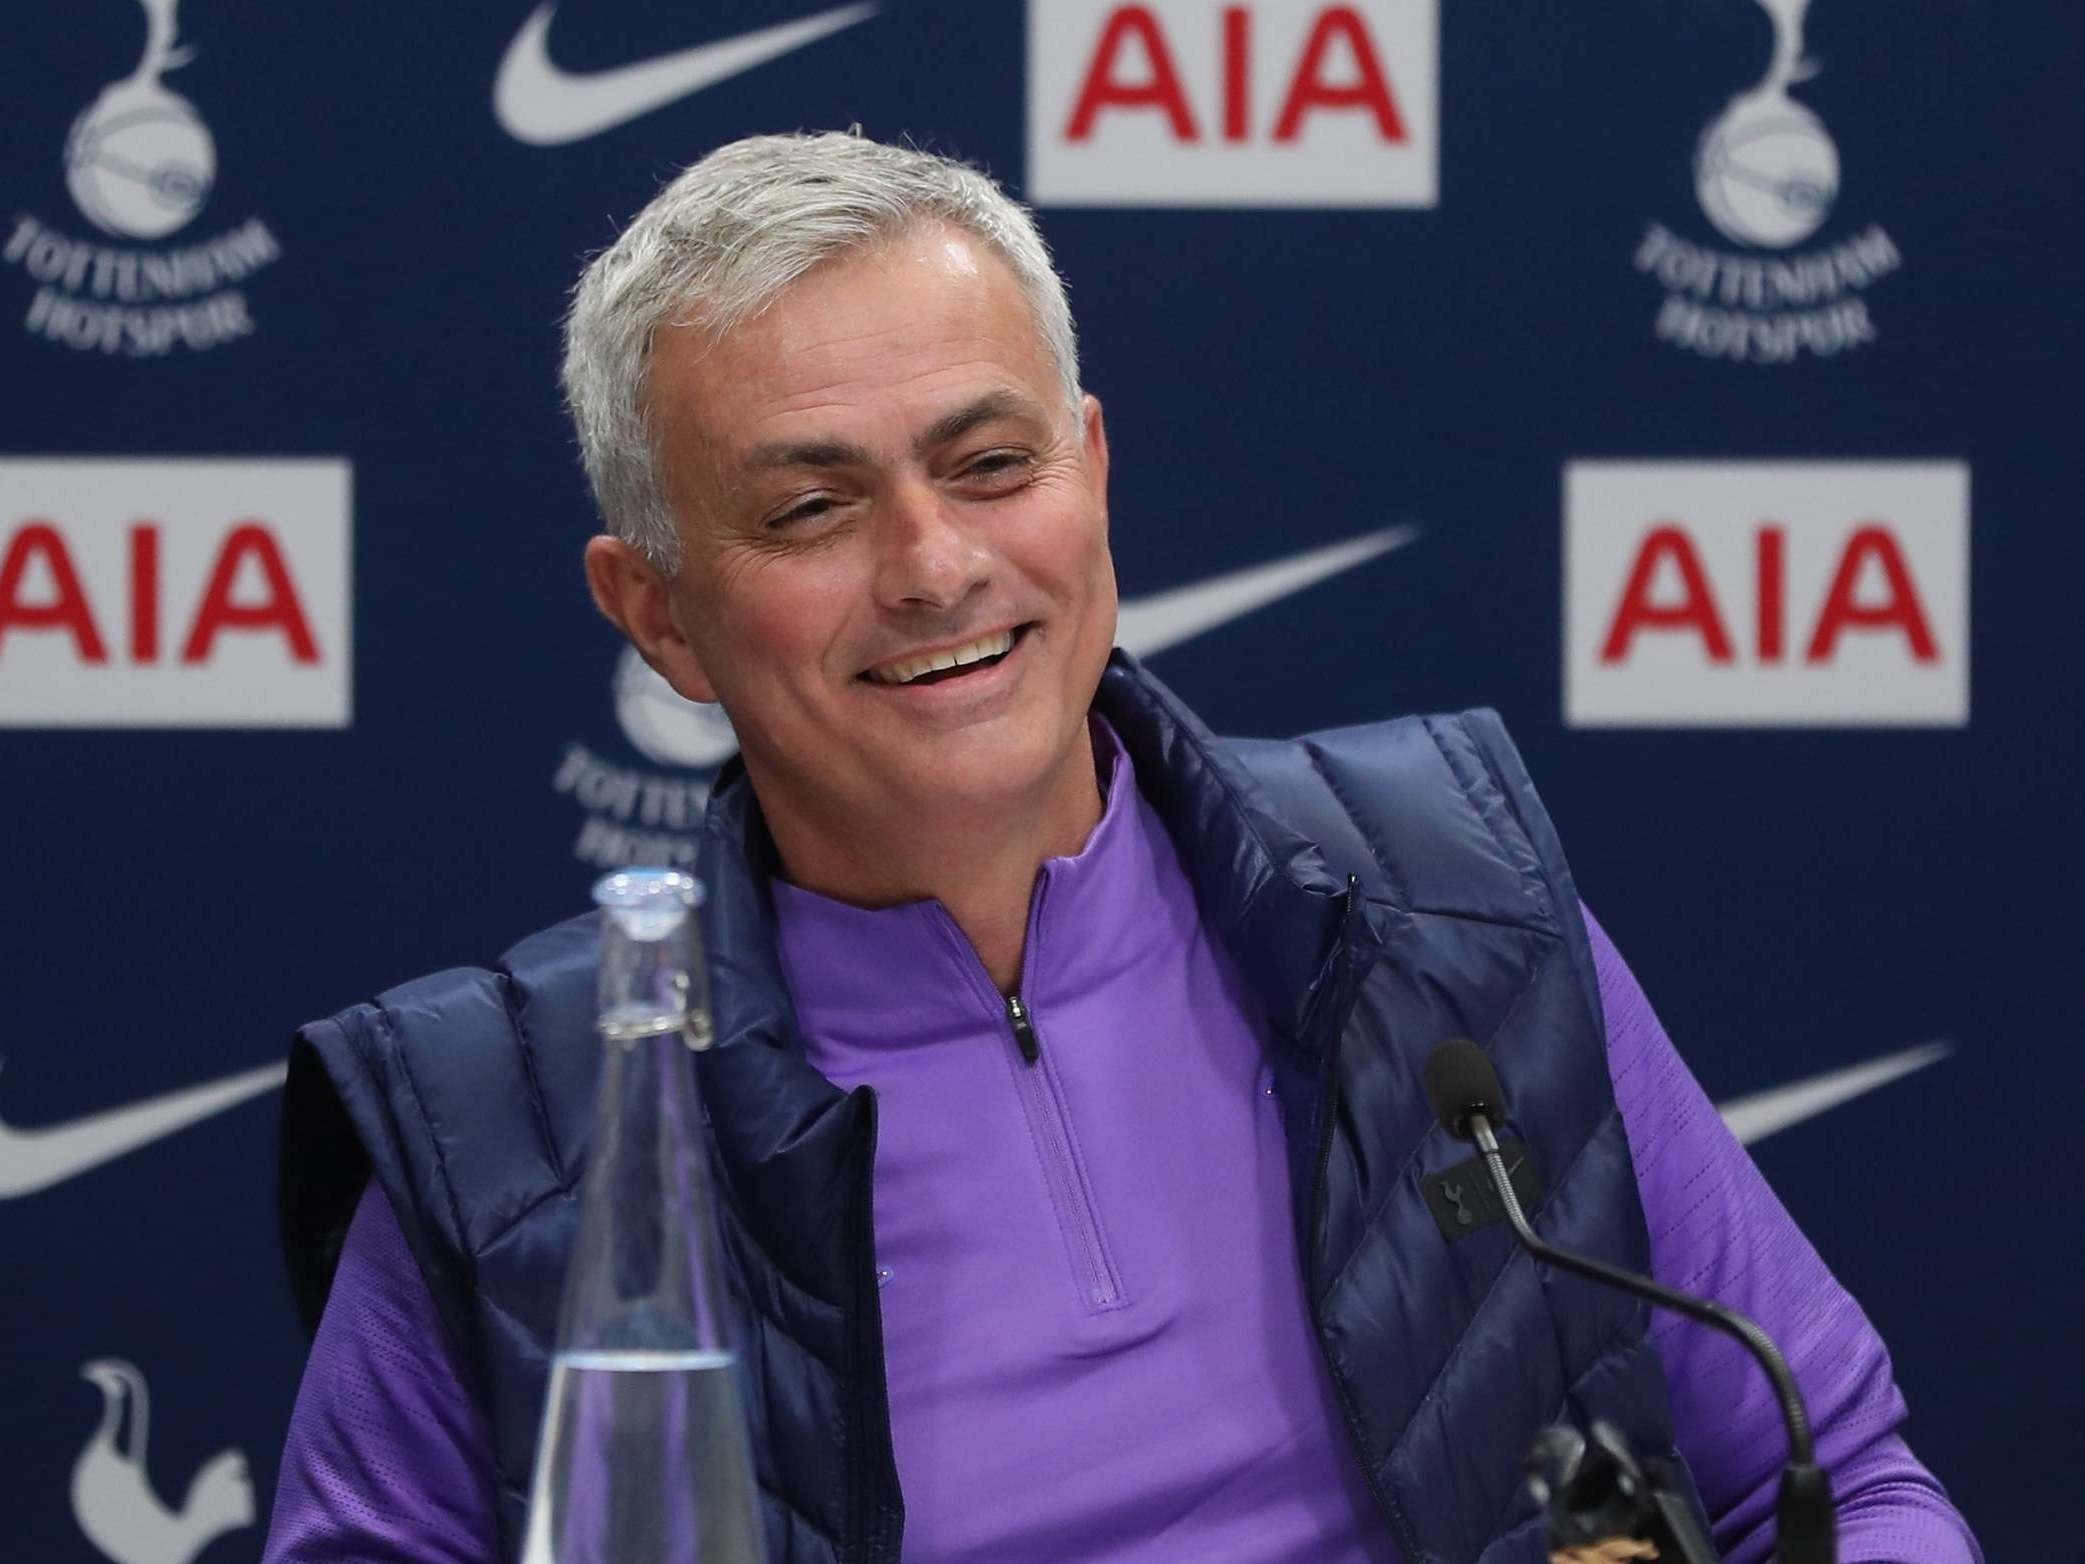 Jose Mourinho dusts off old charm in bid to win over hearts and minds at Tottenham